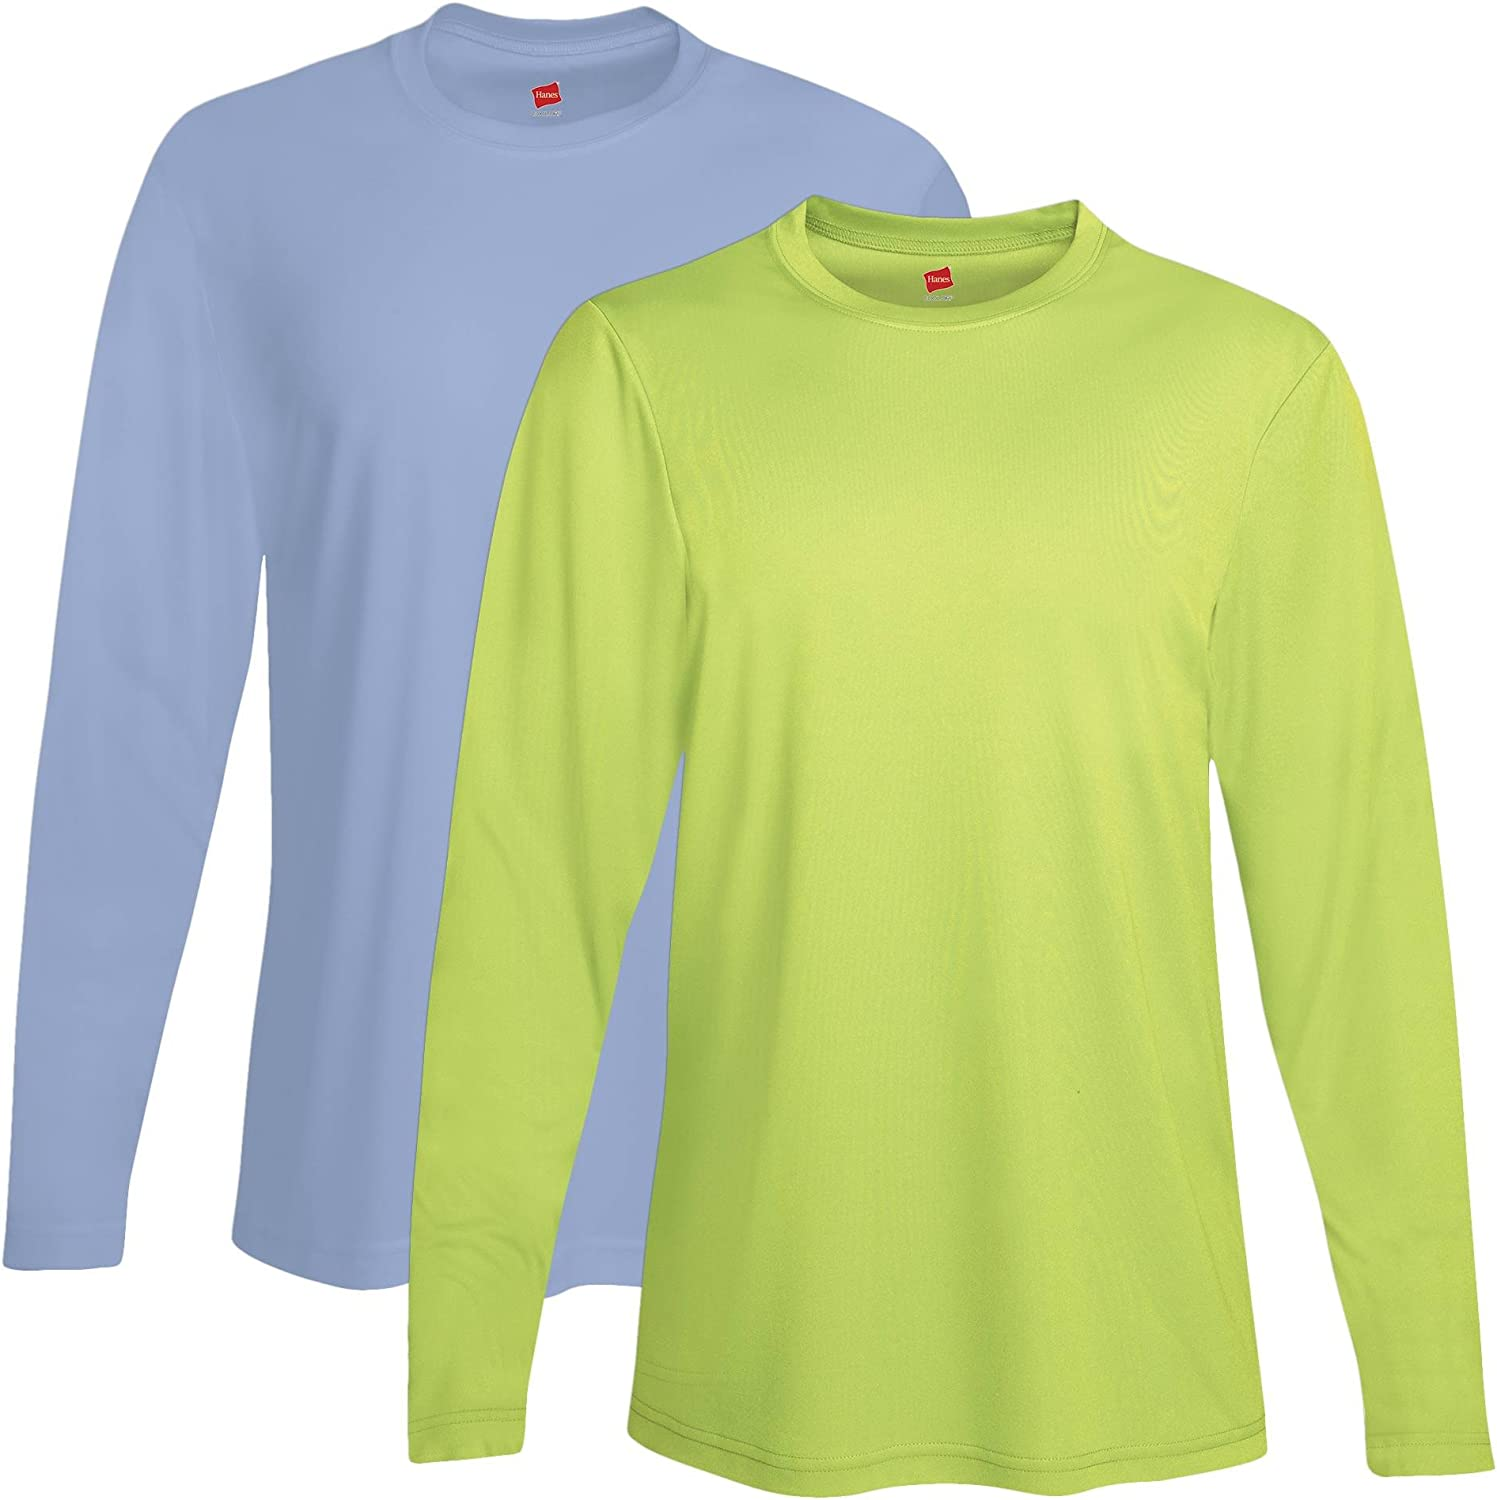 1 Safety Green XXX-Large 1 Light Blue Hanes 482L 100/% Polyester Adult Cool DRI Long-Sleeve Performance T-Shirt